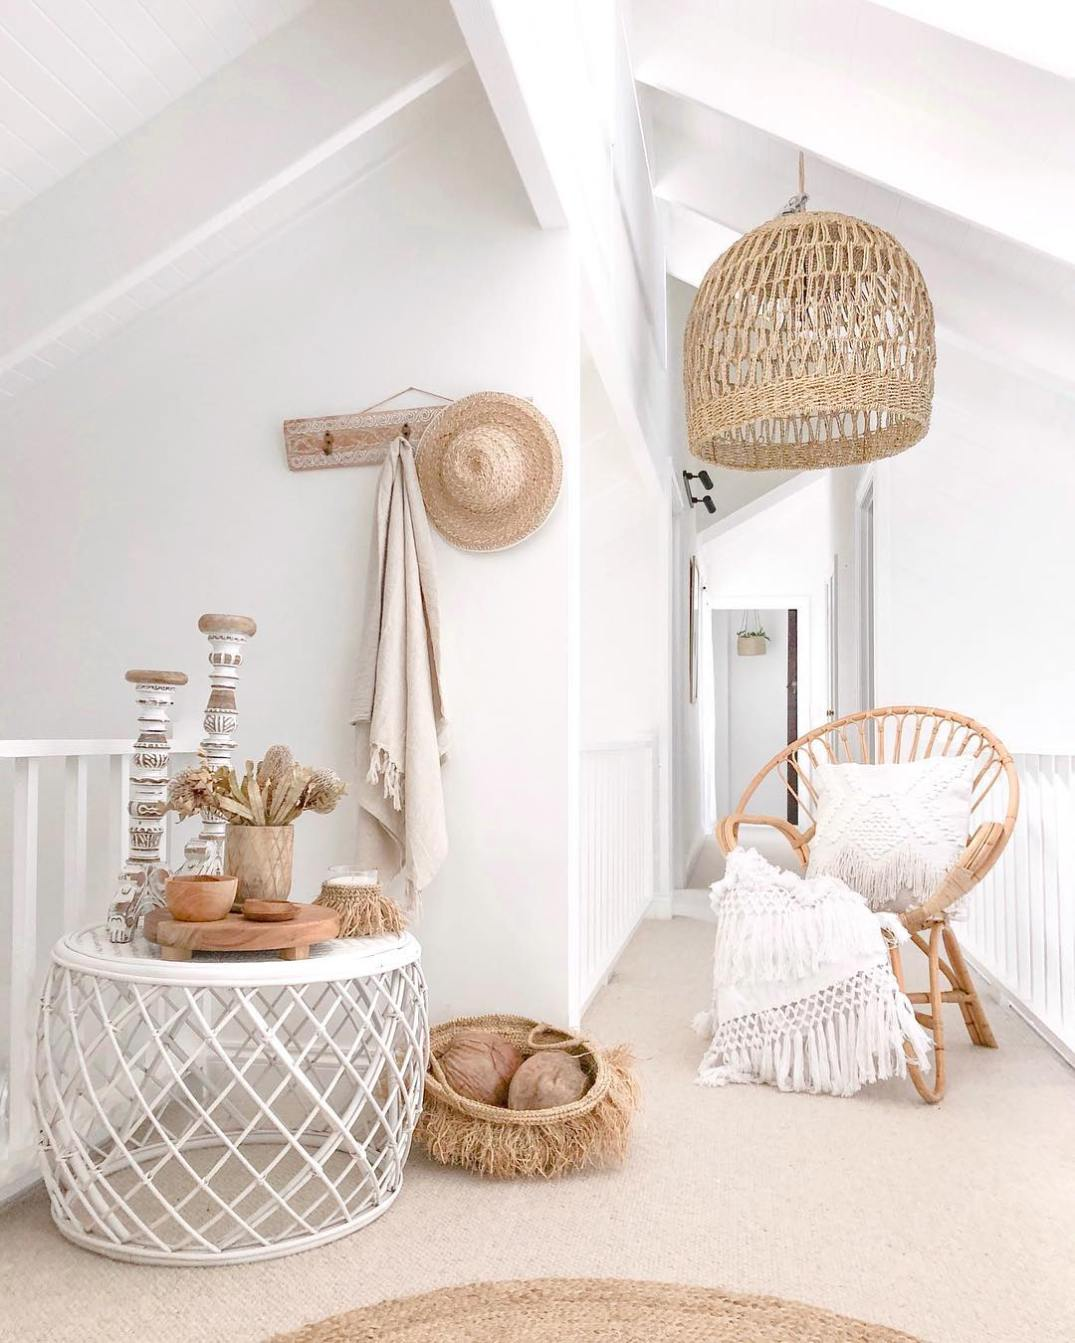 Rattan-Furniture-via-@my.burleigh.reno_